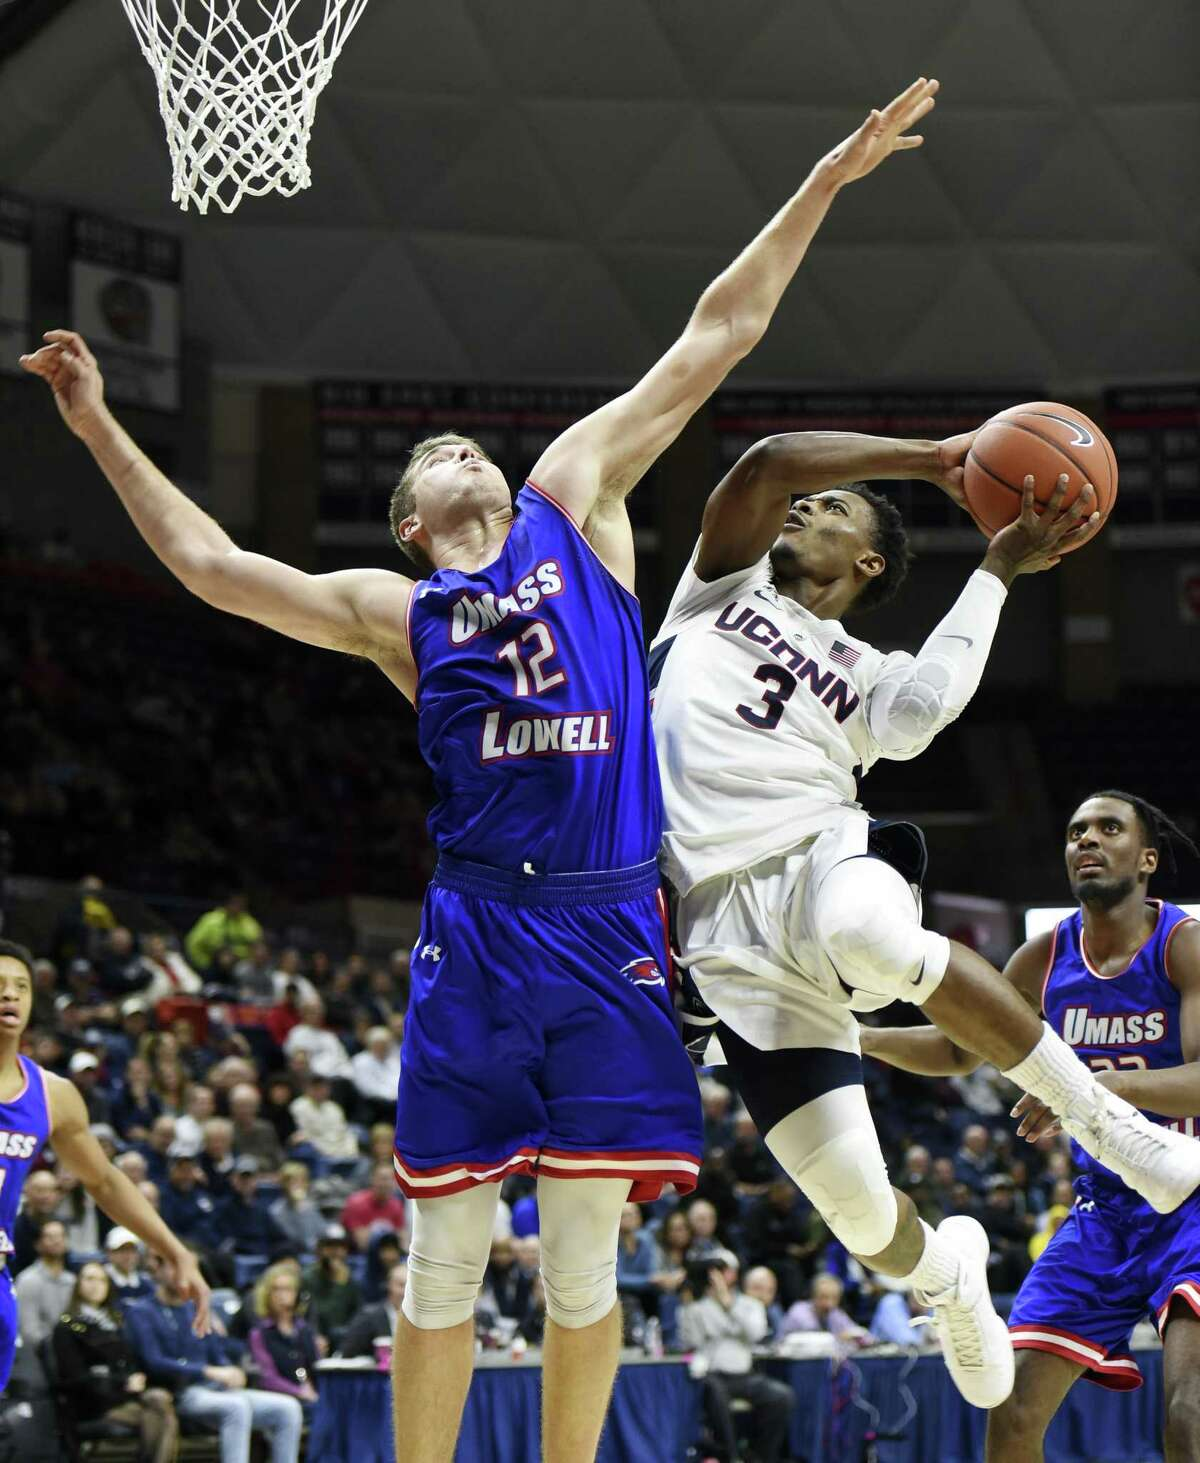 UConn's Alterique Gilbert (3) goes up against UMass-Lowell's Sesan Russell (2) during the first half of an NCAA college basketball game, Tuesday, Nov. 27, 2018, in Storrs, Conn. (AP Photo/Stephen Dunn)